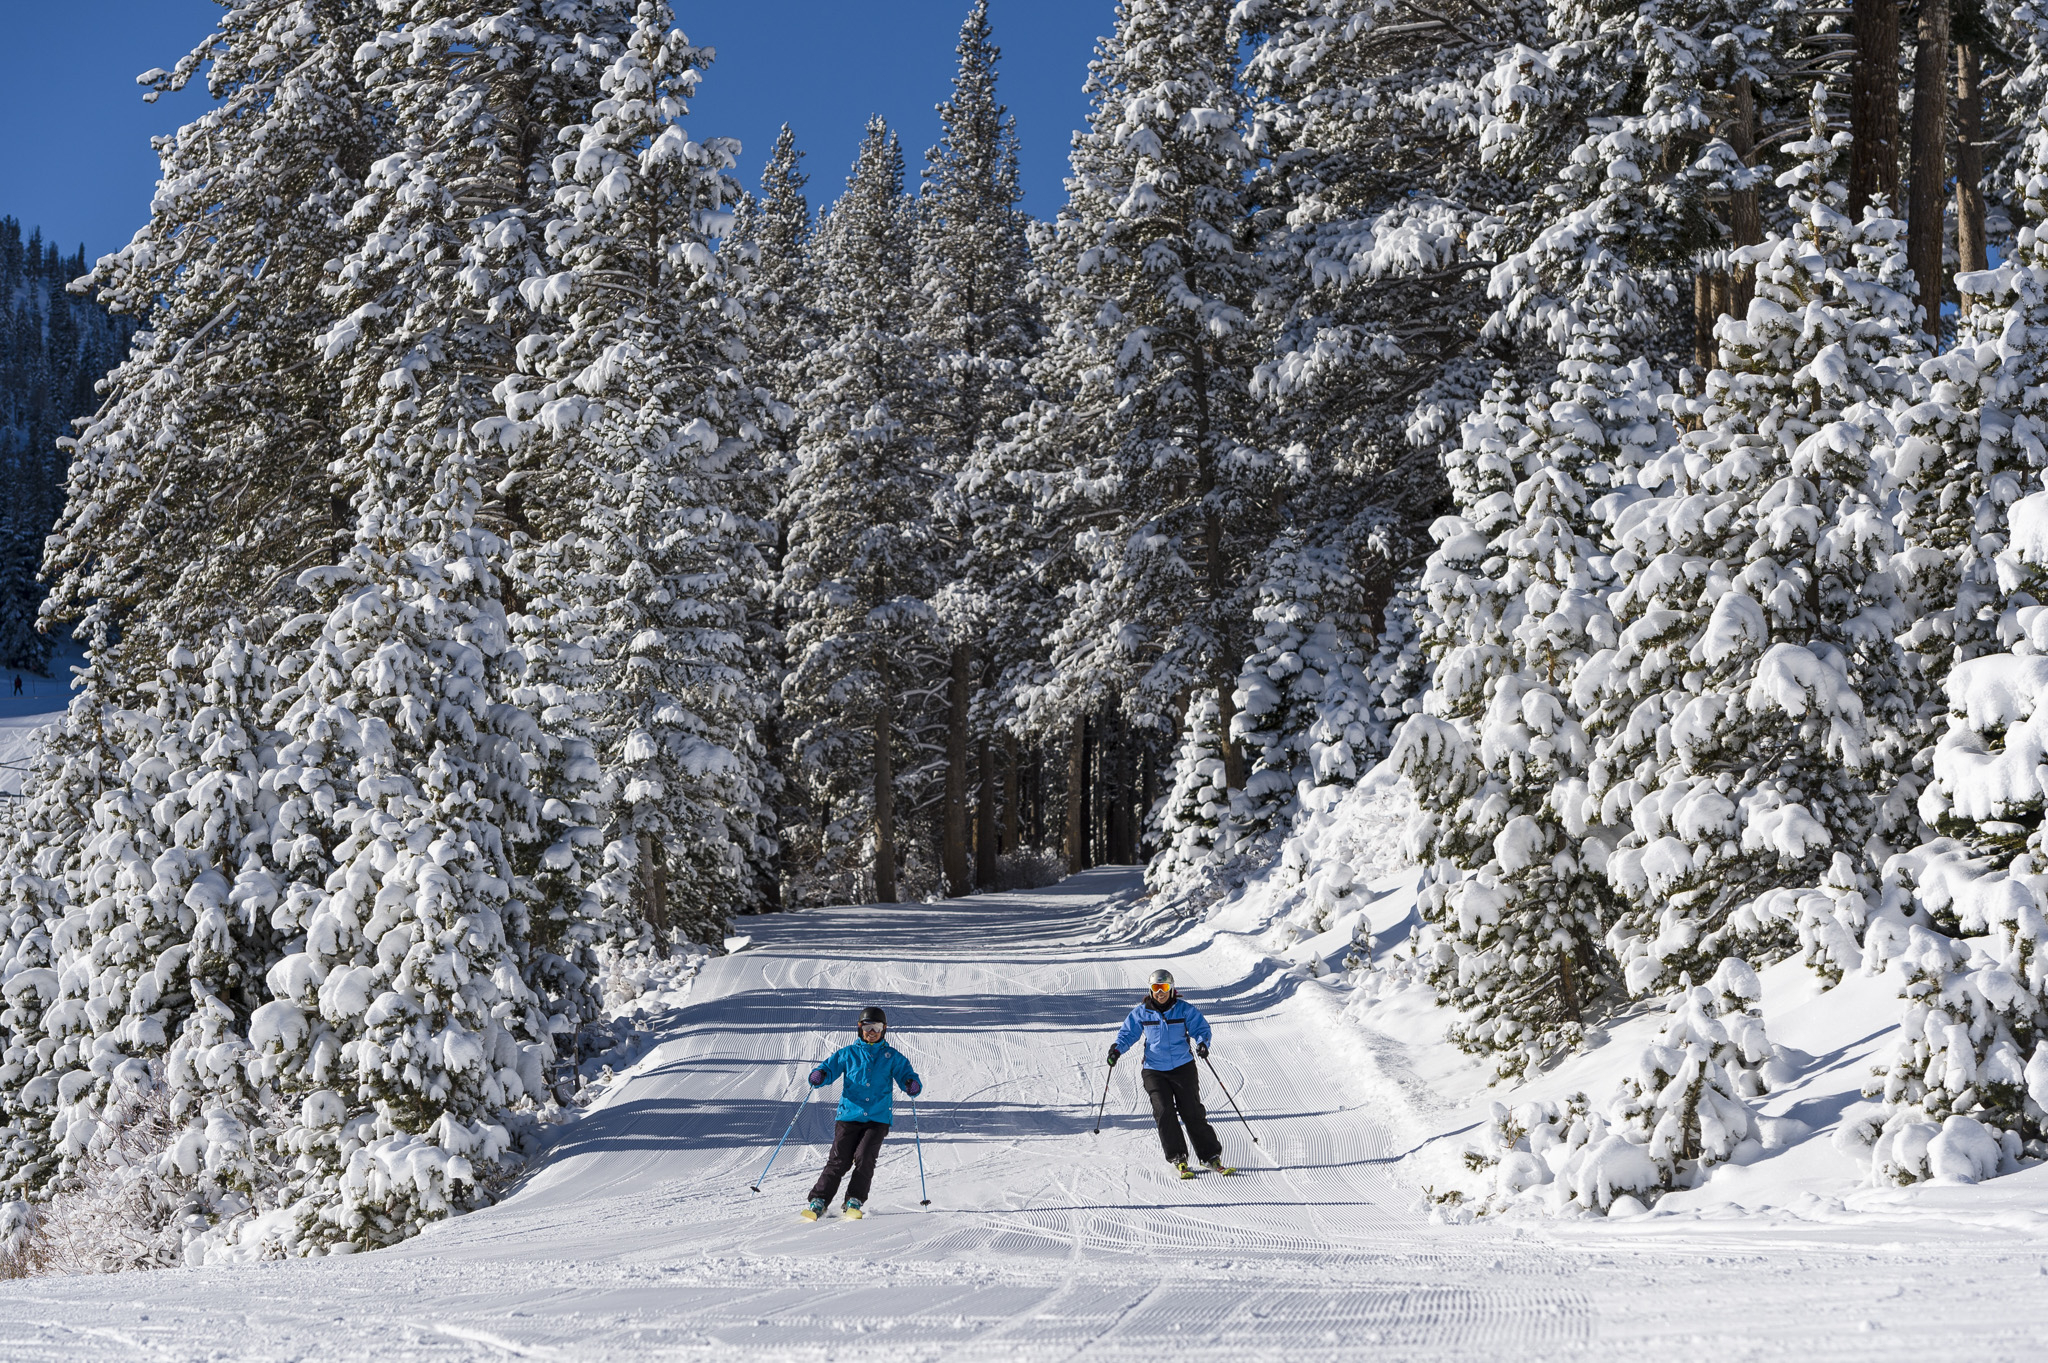 Unique Events And Features At Lake Tahoe Ski Resorts